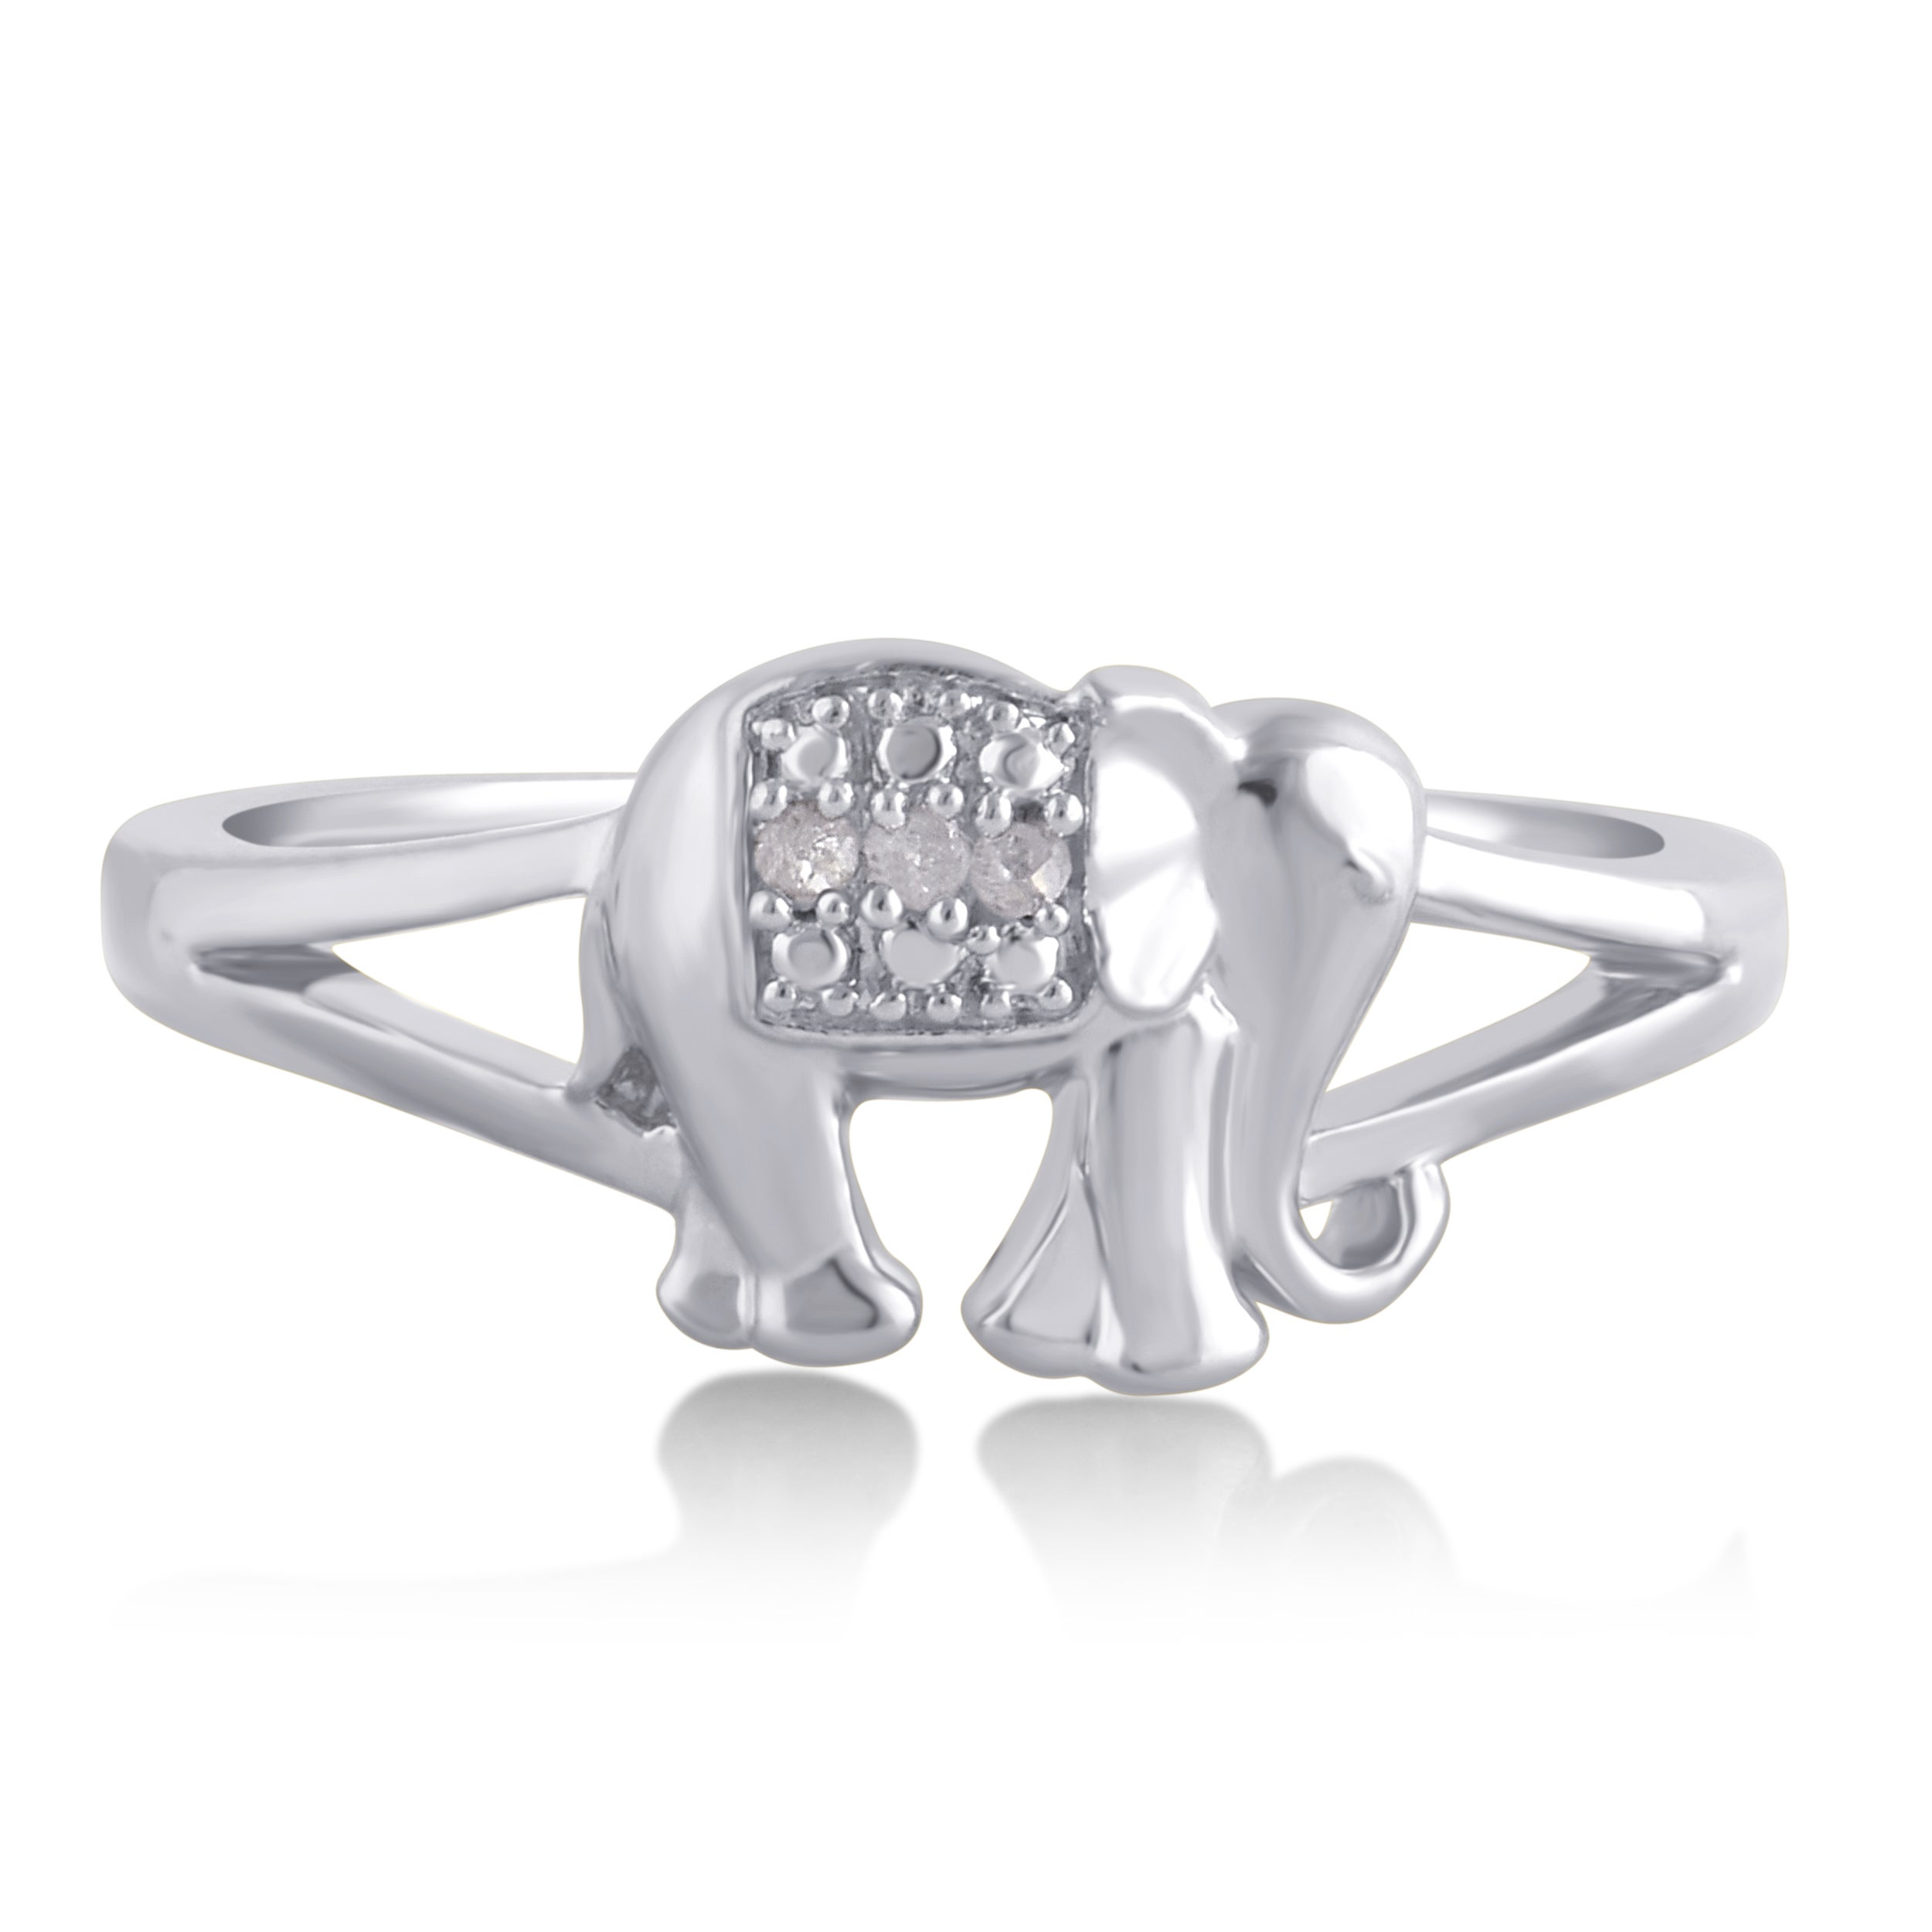 bling elephant antiqued double sstr rings ring elephants animal engagement silver sterling lucky jewelry